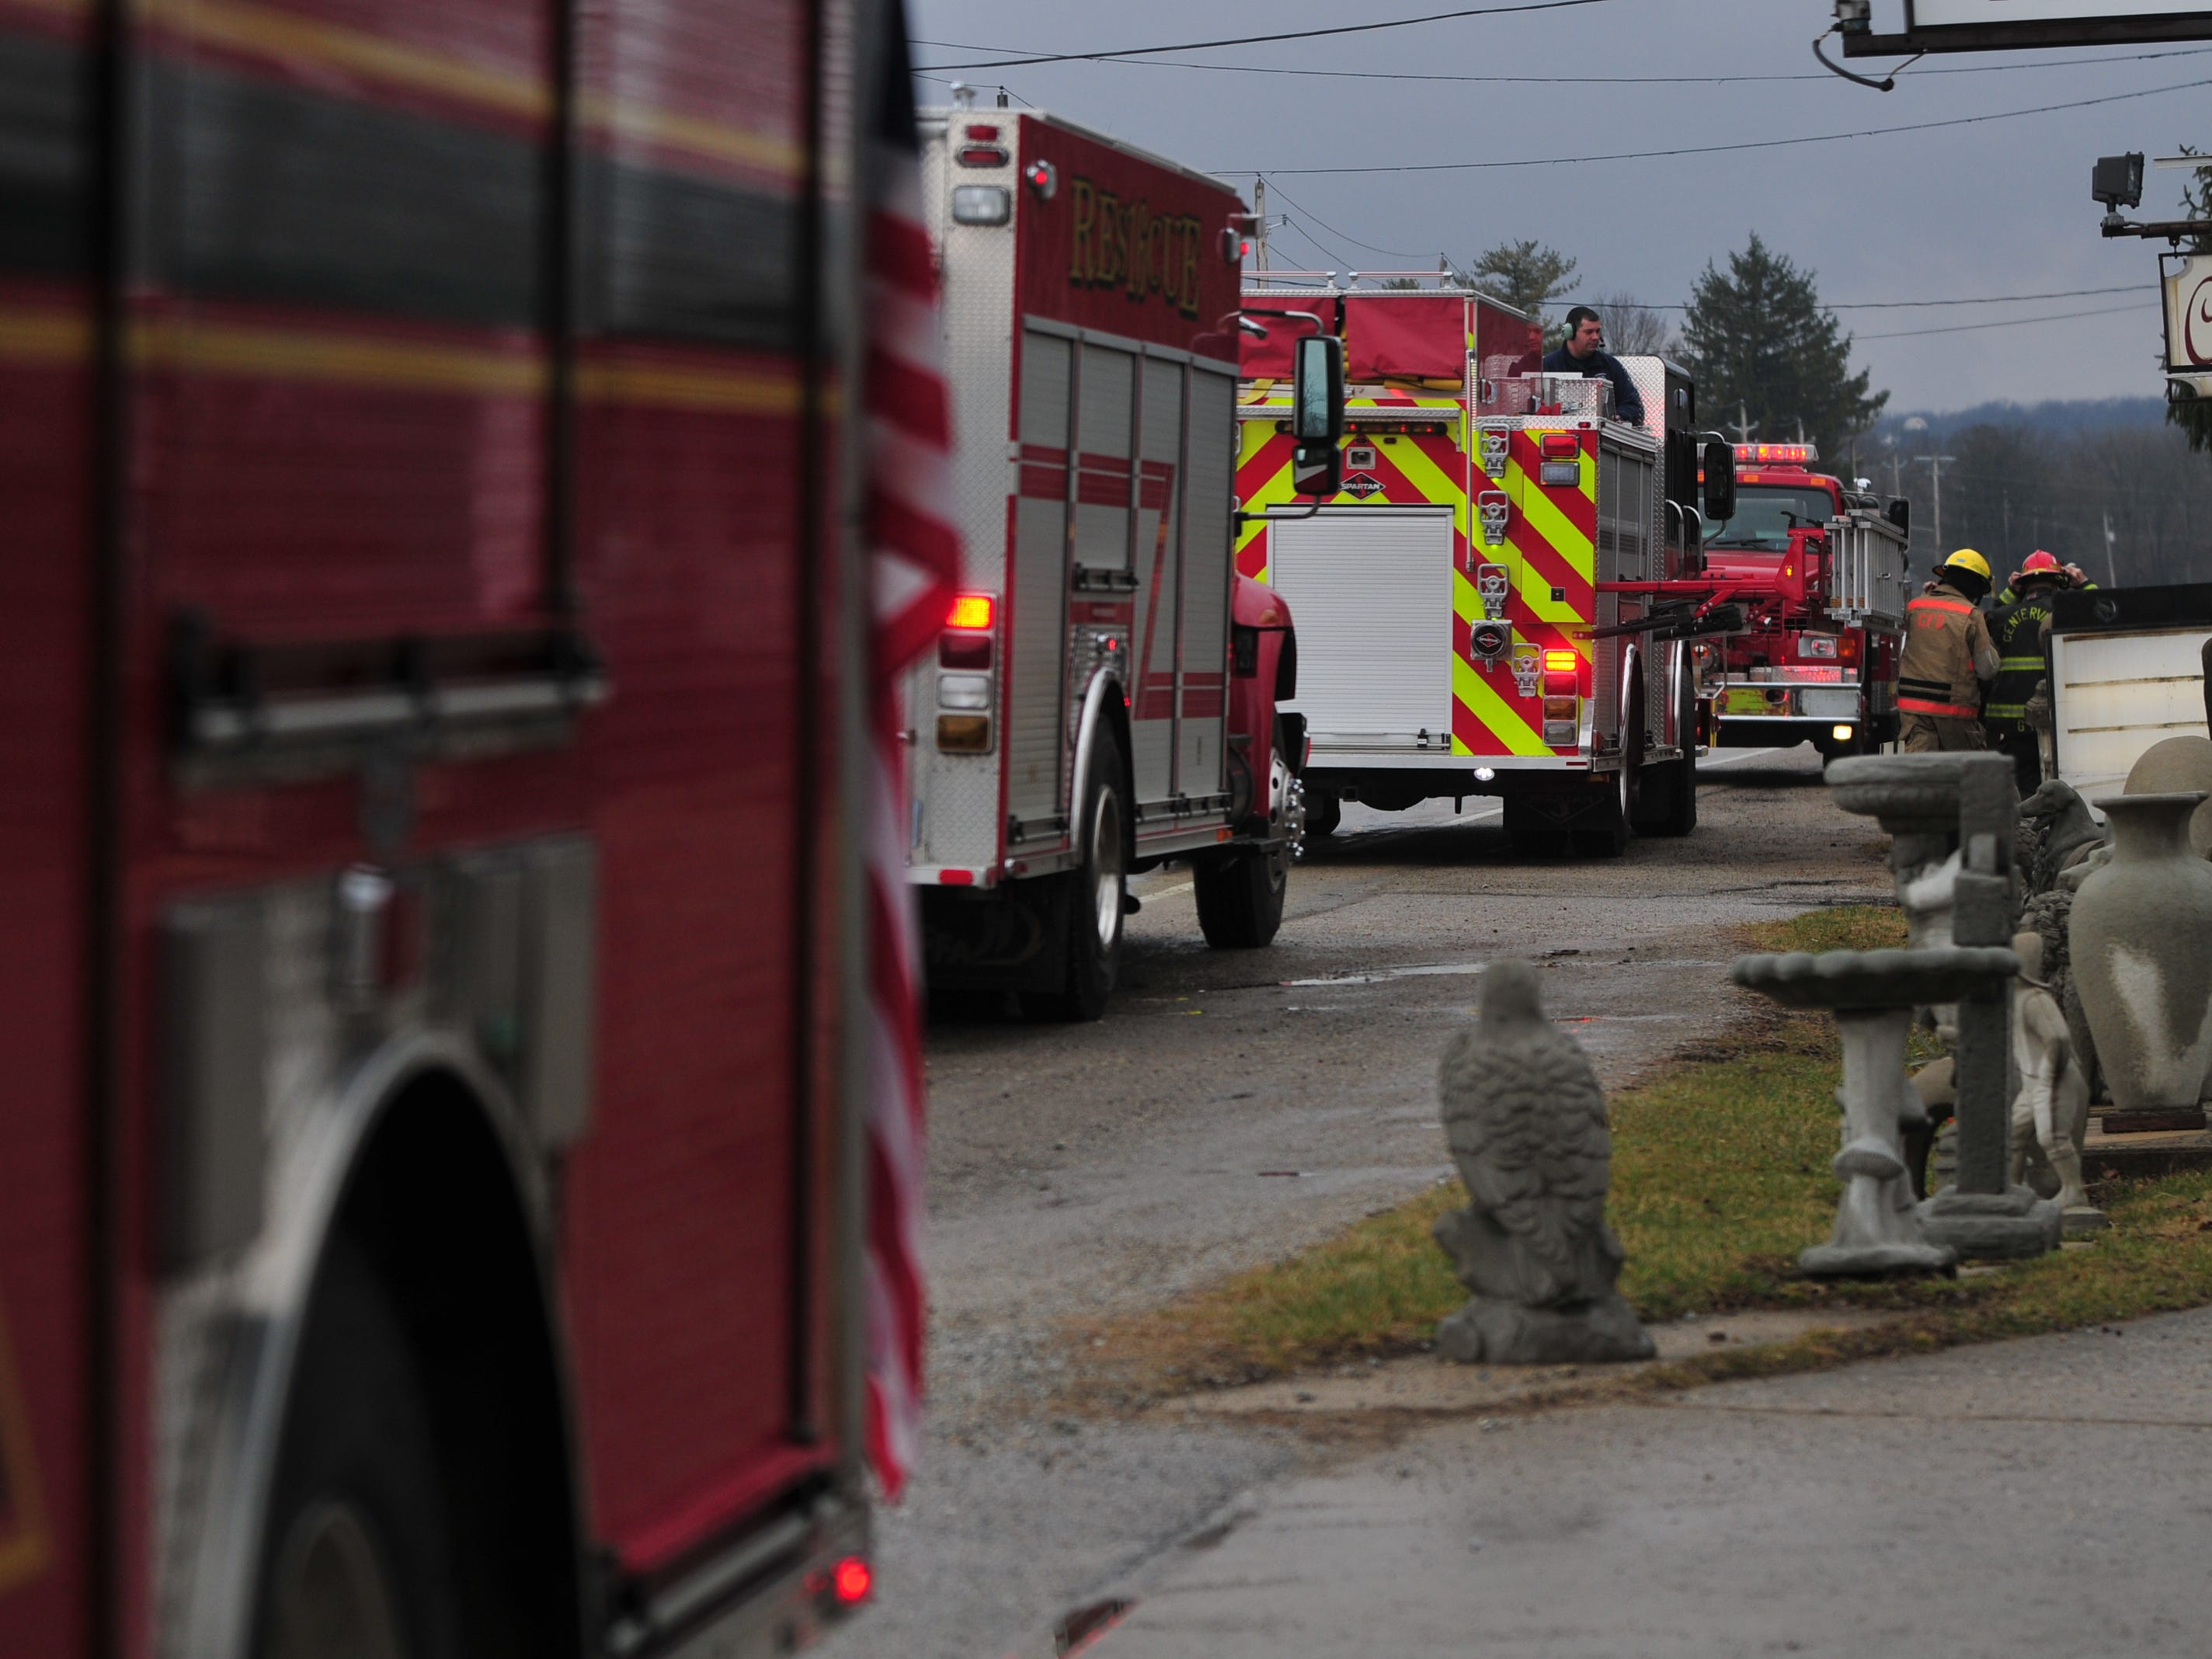 Firefighters from Centerville, Greens Fork and Cambridge City responded about 9:30 a.m. Thursday to a chimney fire in the 6800 block of U.S. 40 West.